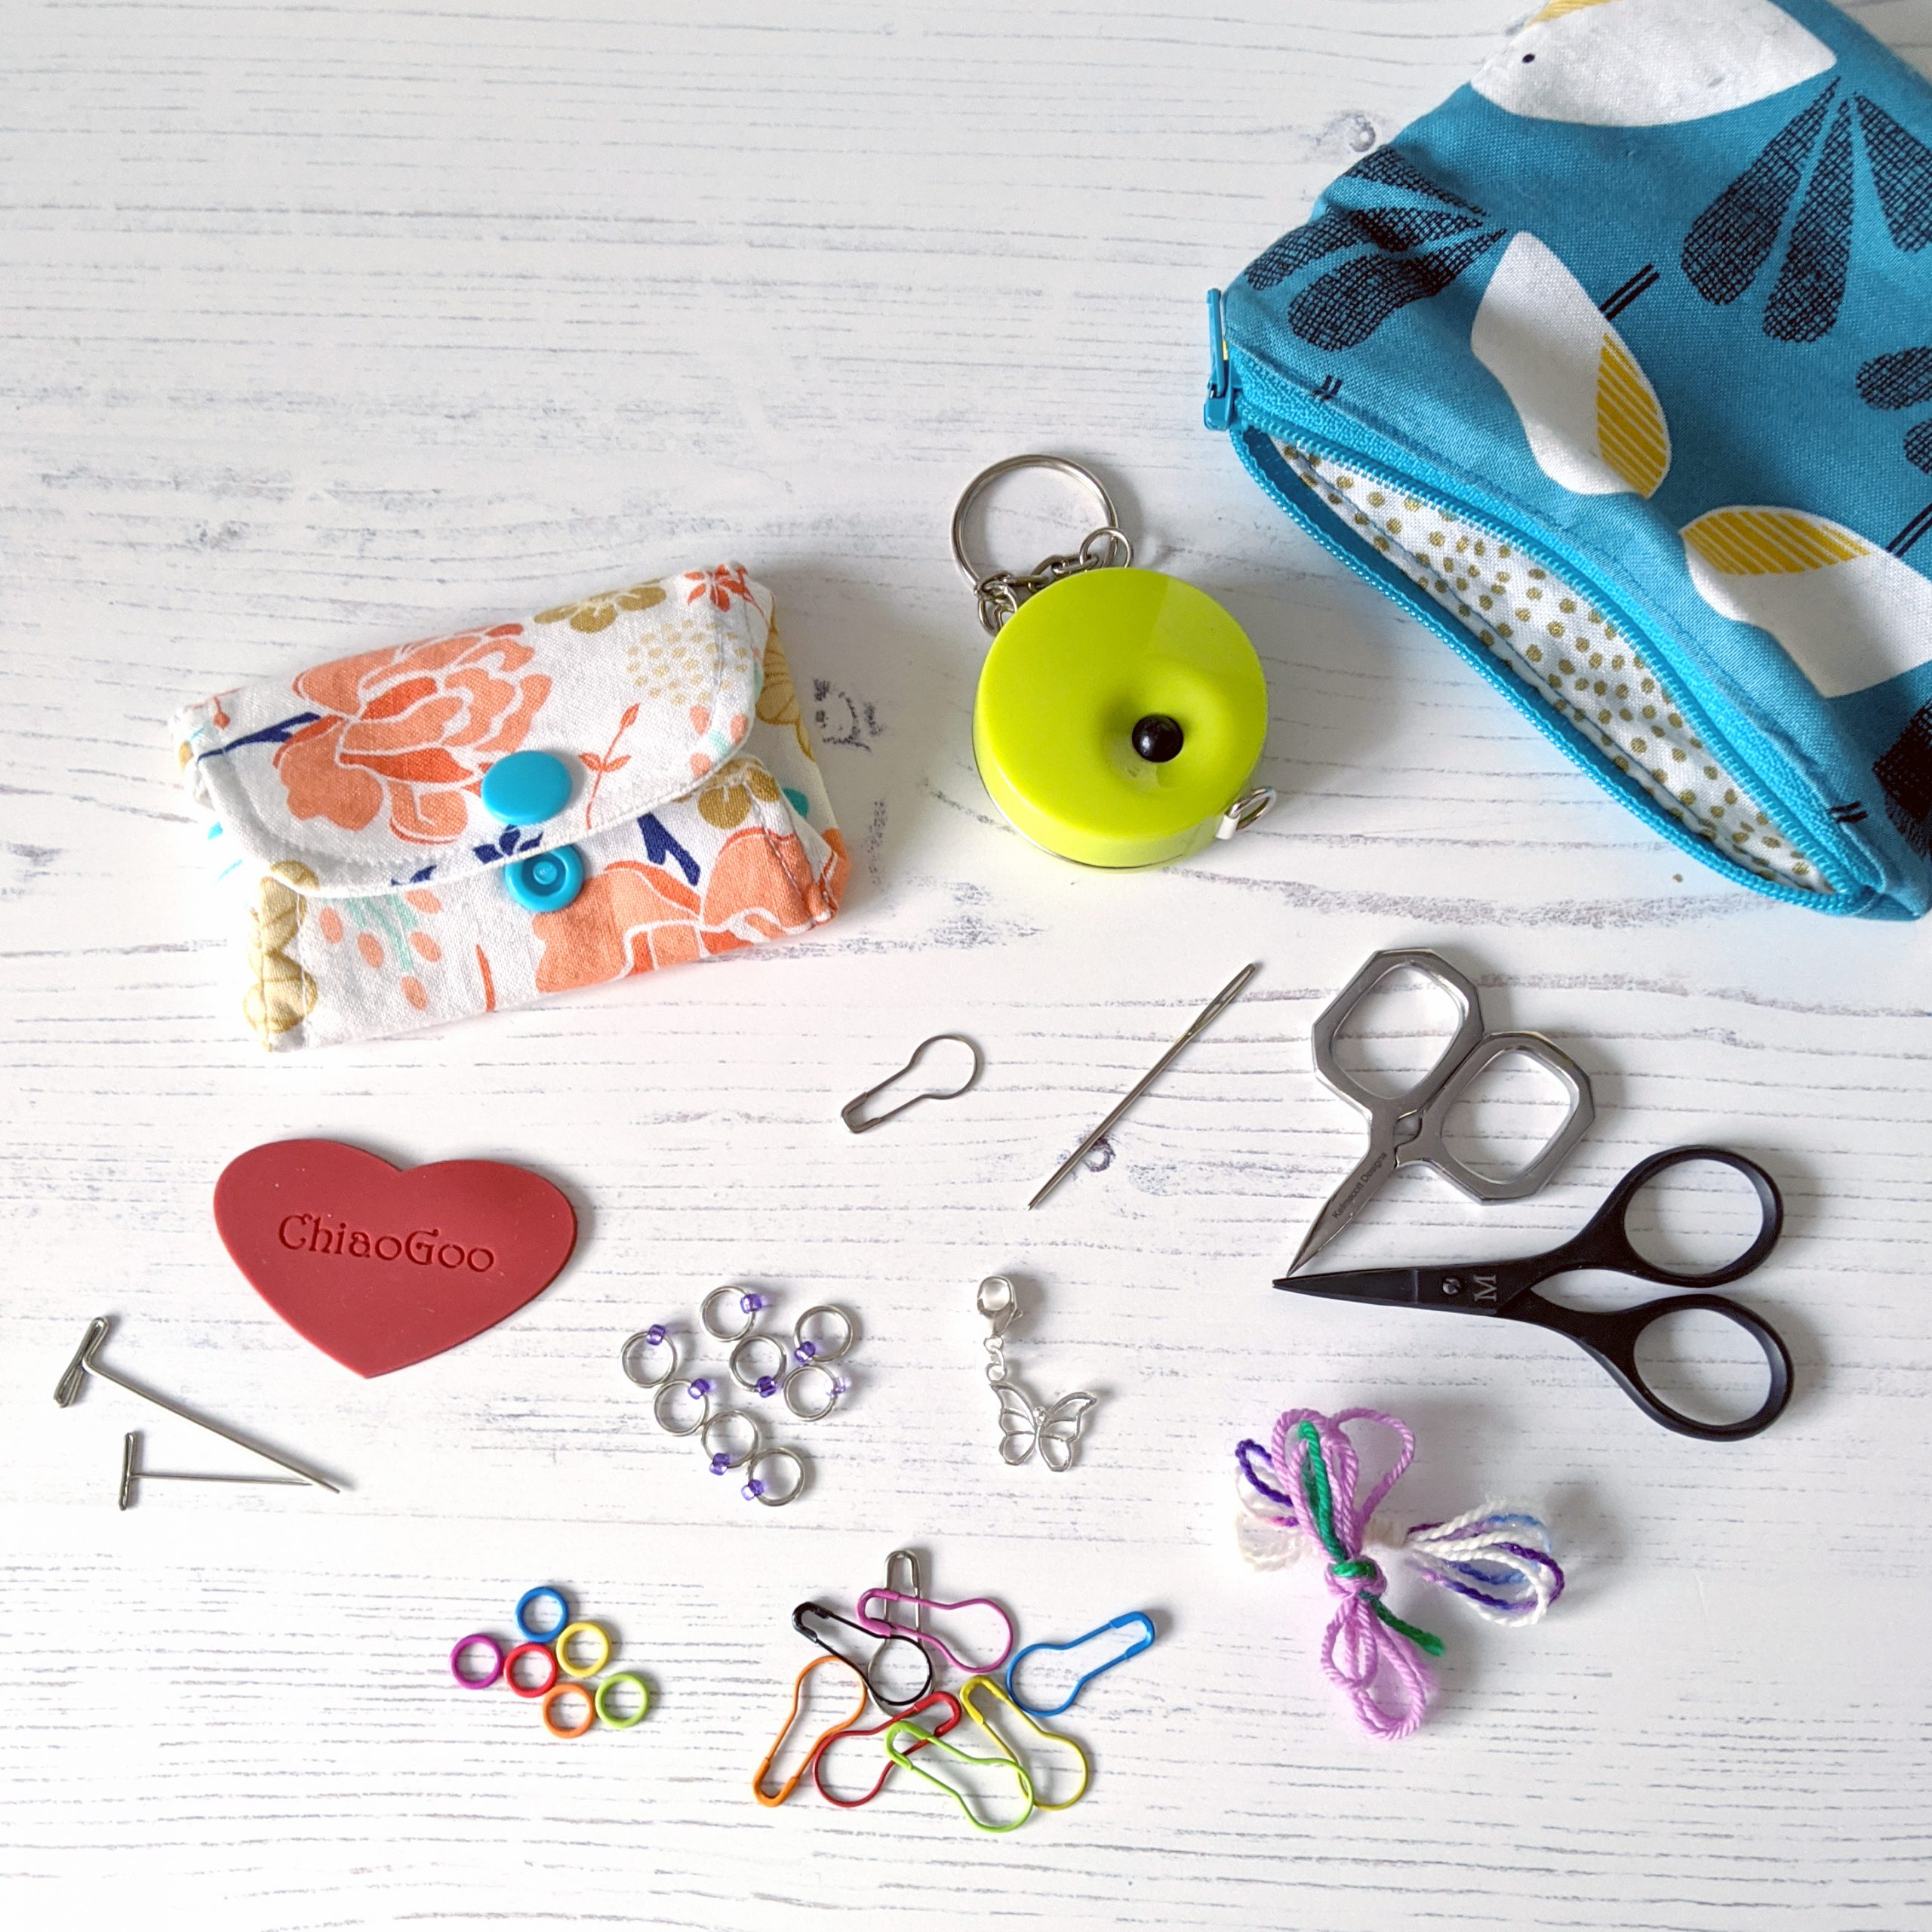 Notions pouches, tape measure, scissors, scrap yarn and a selection of stitch markers